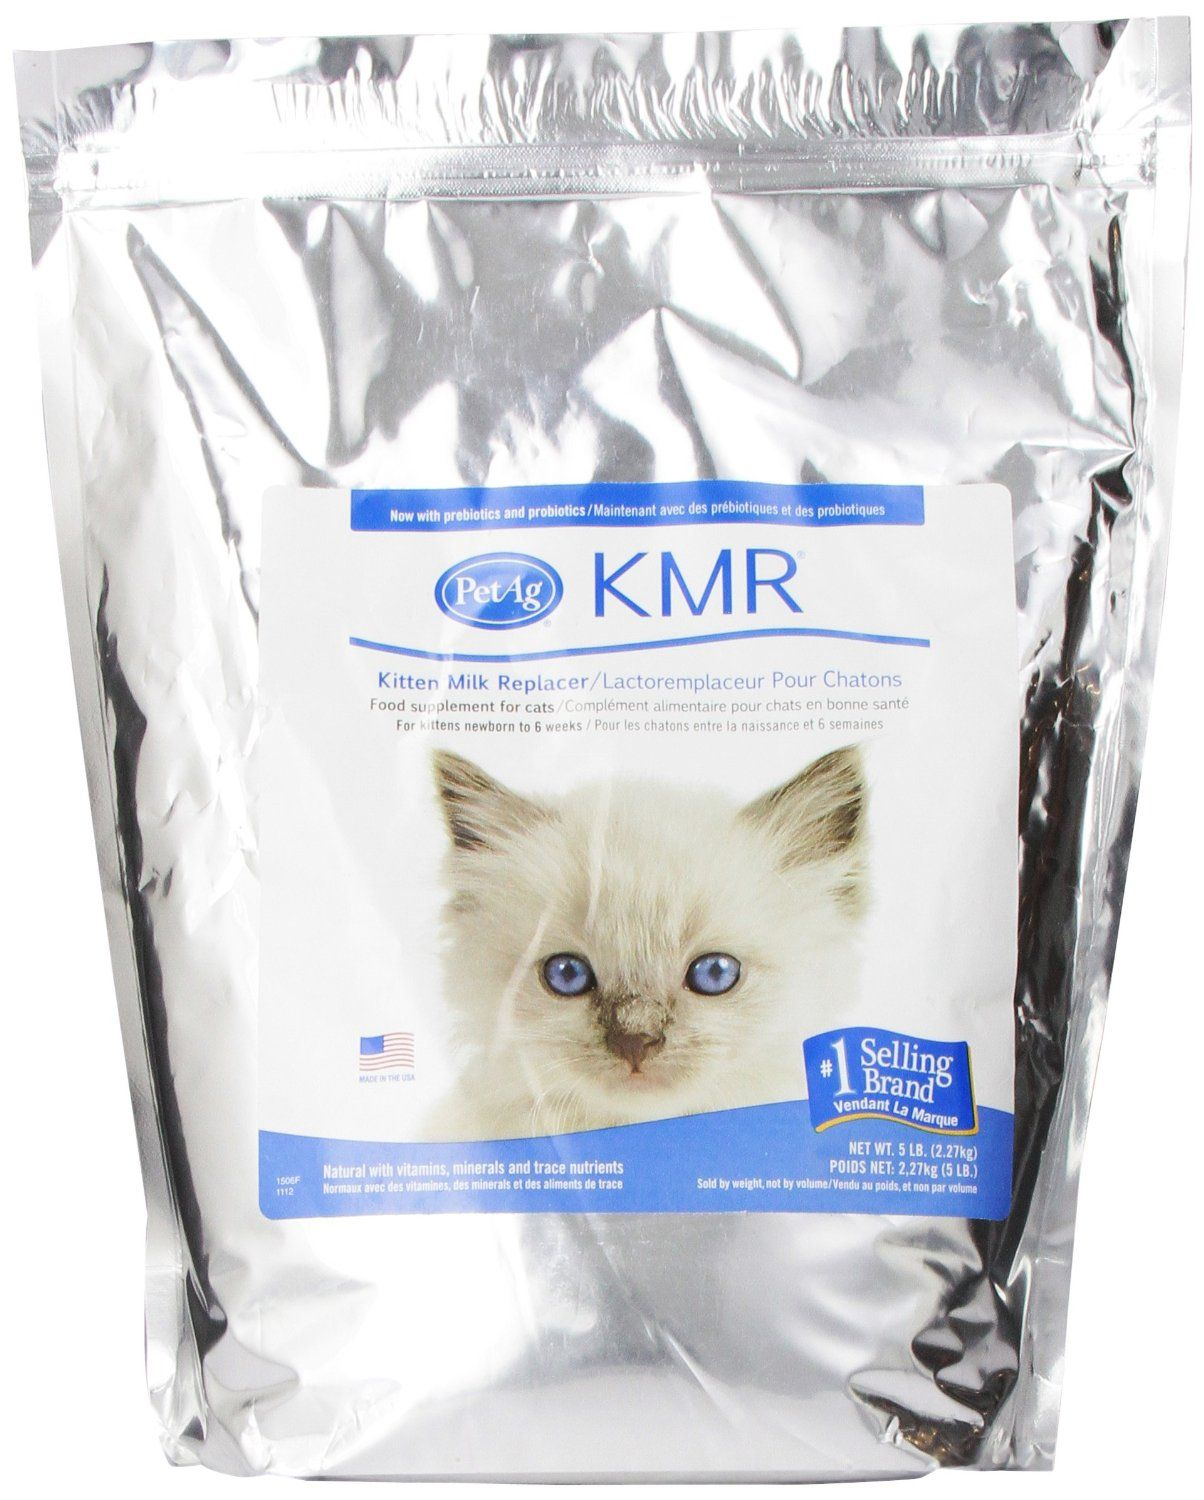 KMR Kitten Milk Replacer Want to know more, click on